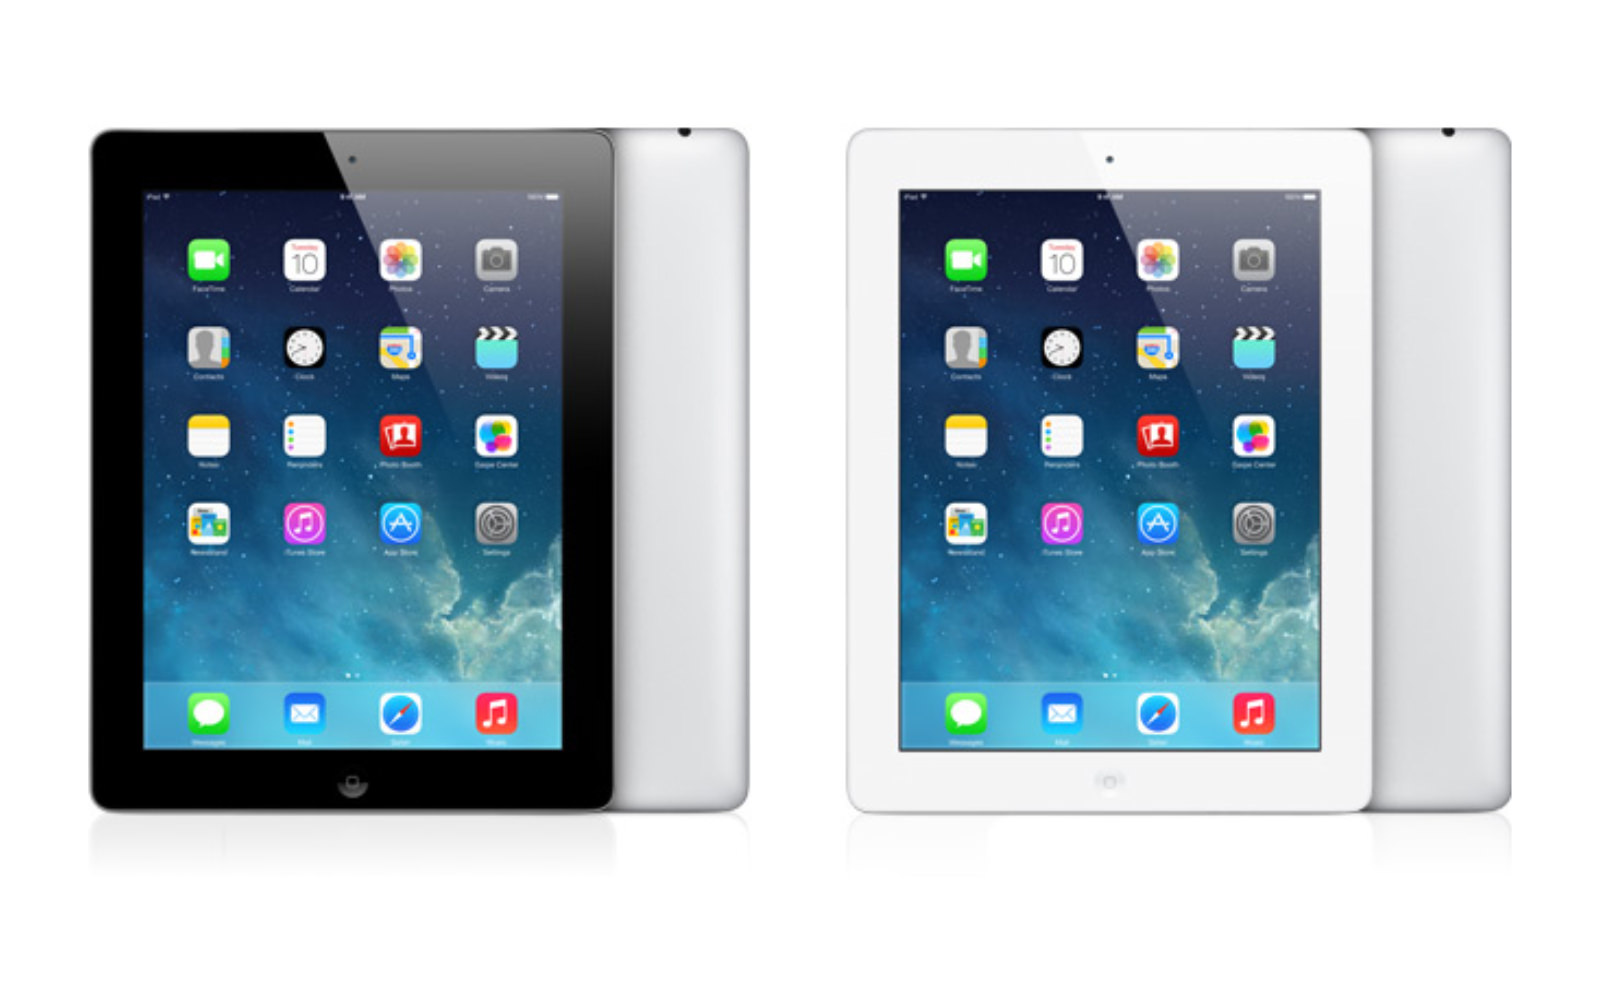 Ipad 2 official images